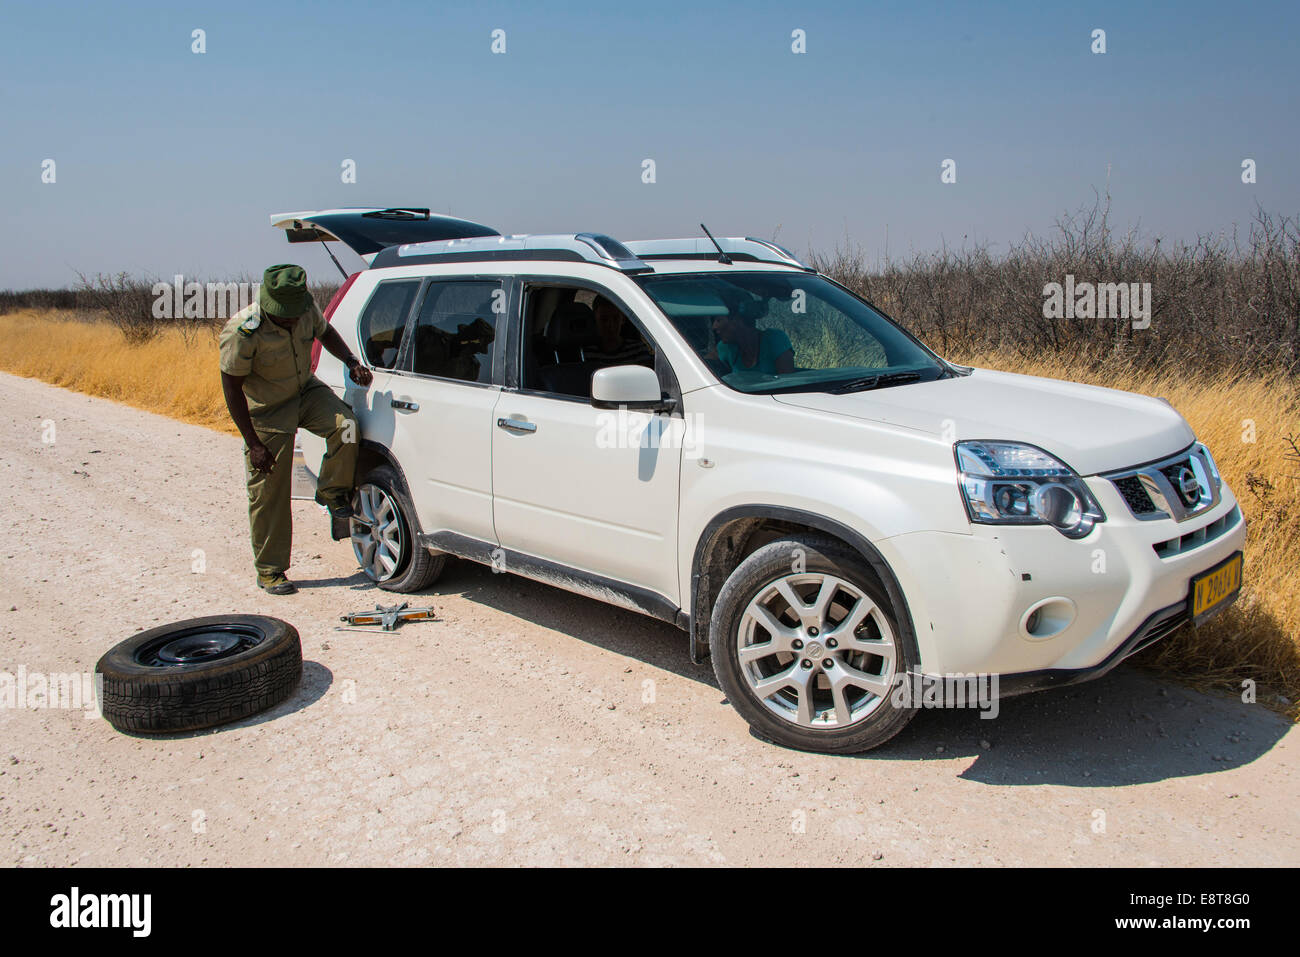 African gamekeeper changing a tire of an SUV, Etosha National Park, Namibia - Stock Image